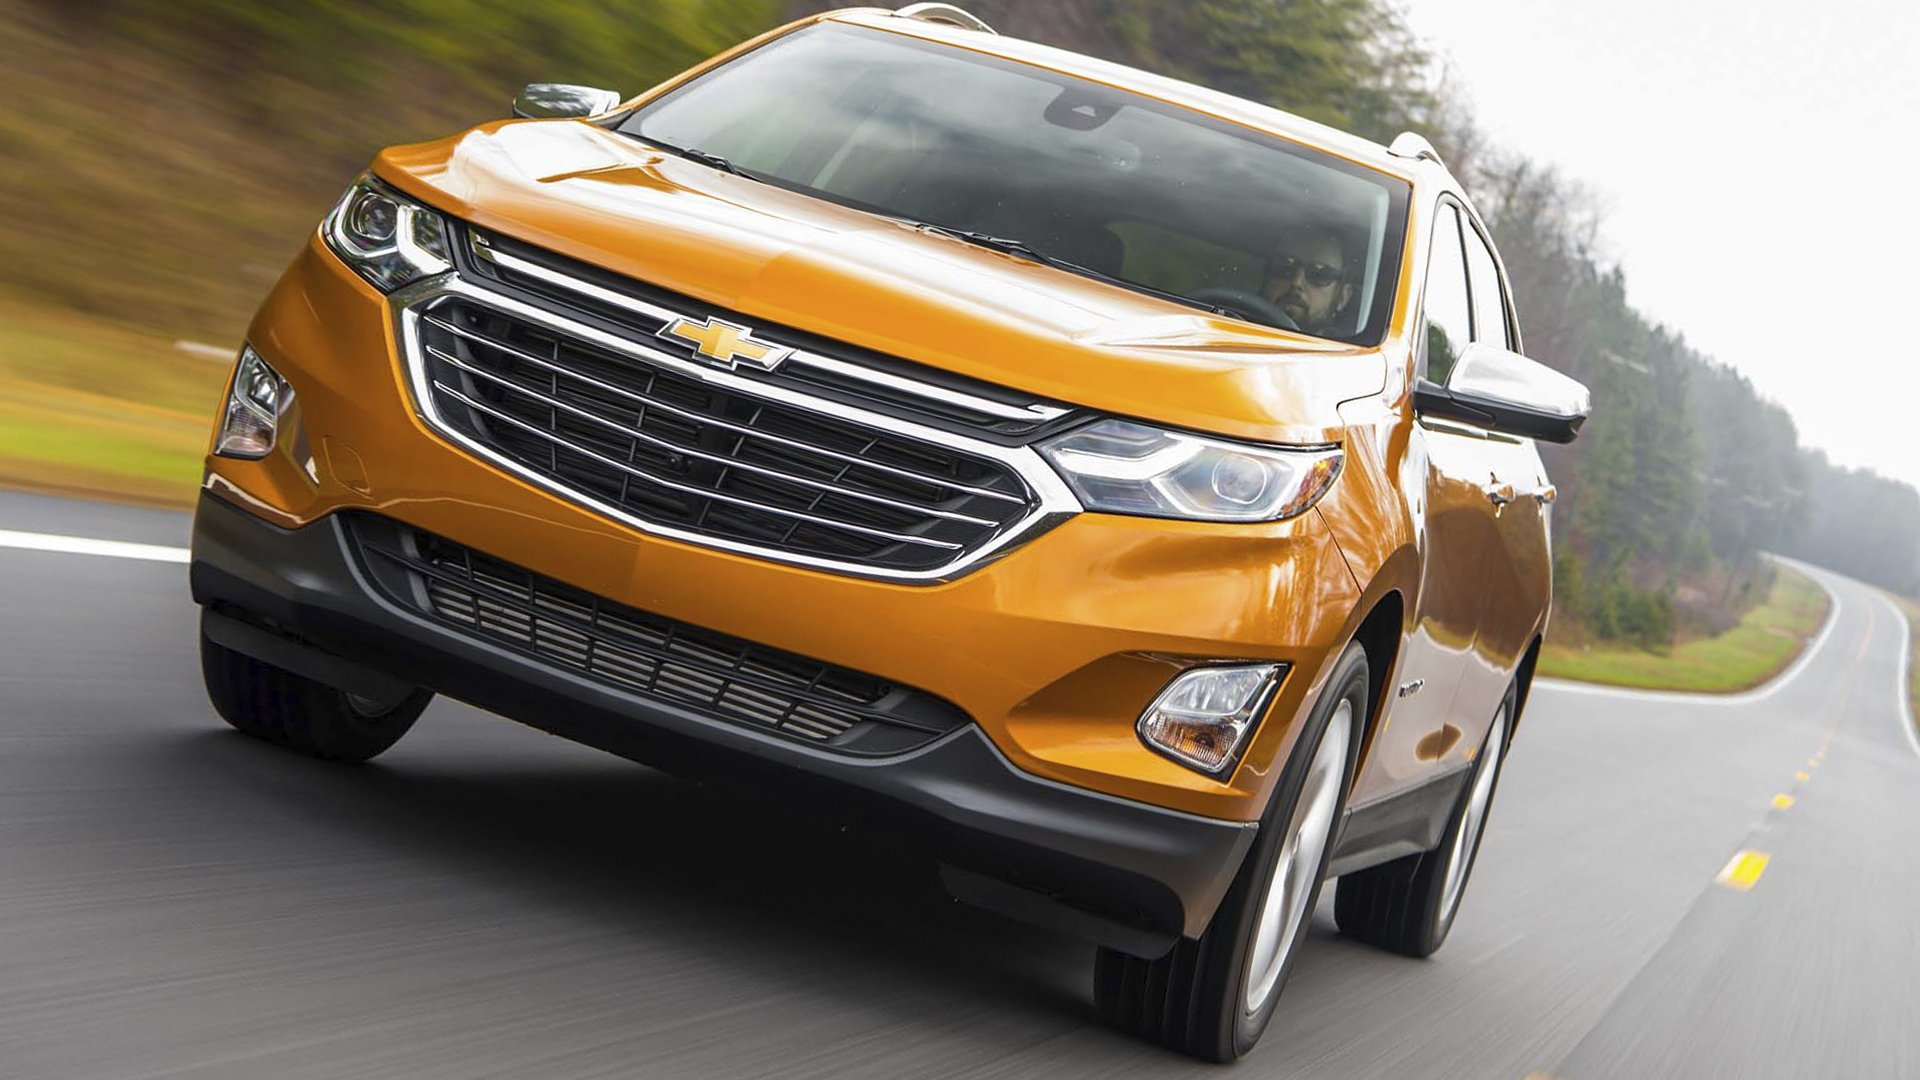 New 2019 Chevrolet Equinox Wallpaper HD Desktop